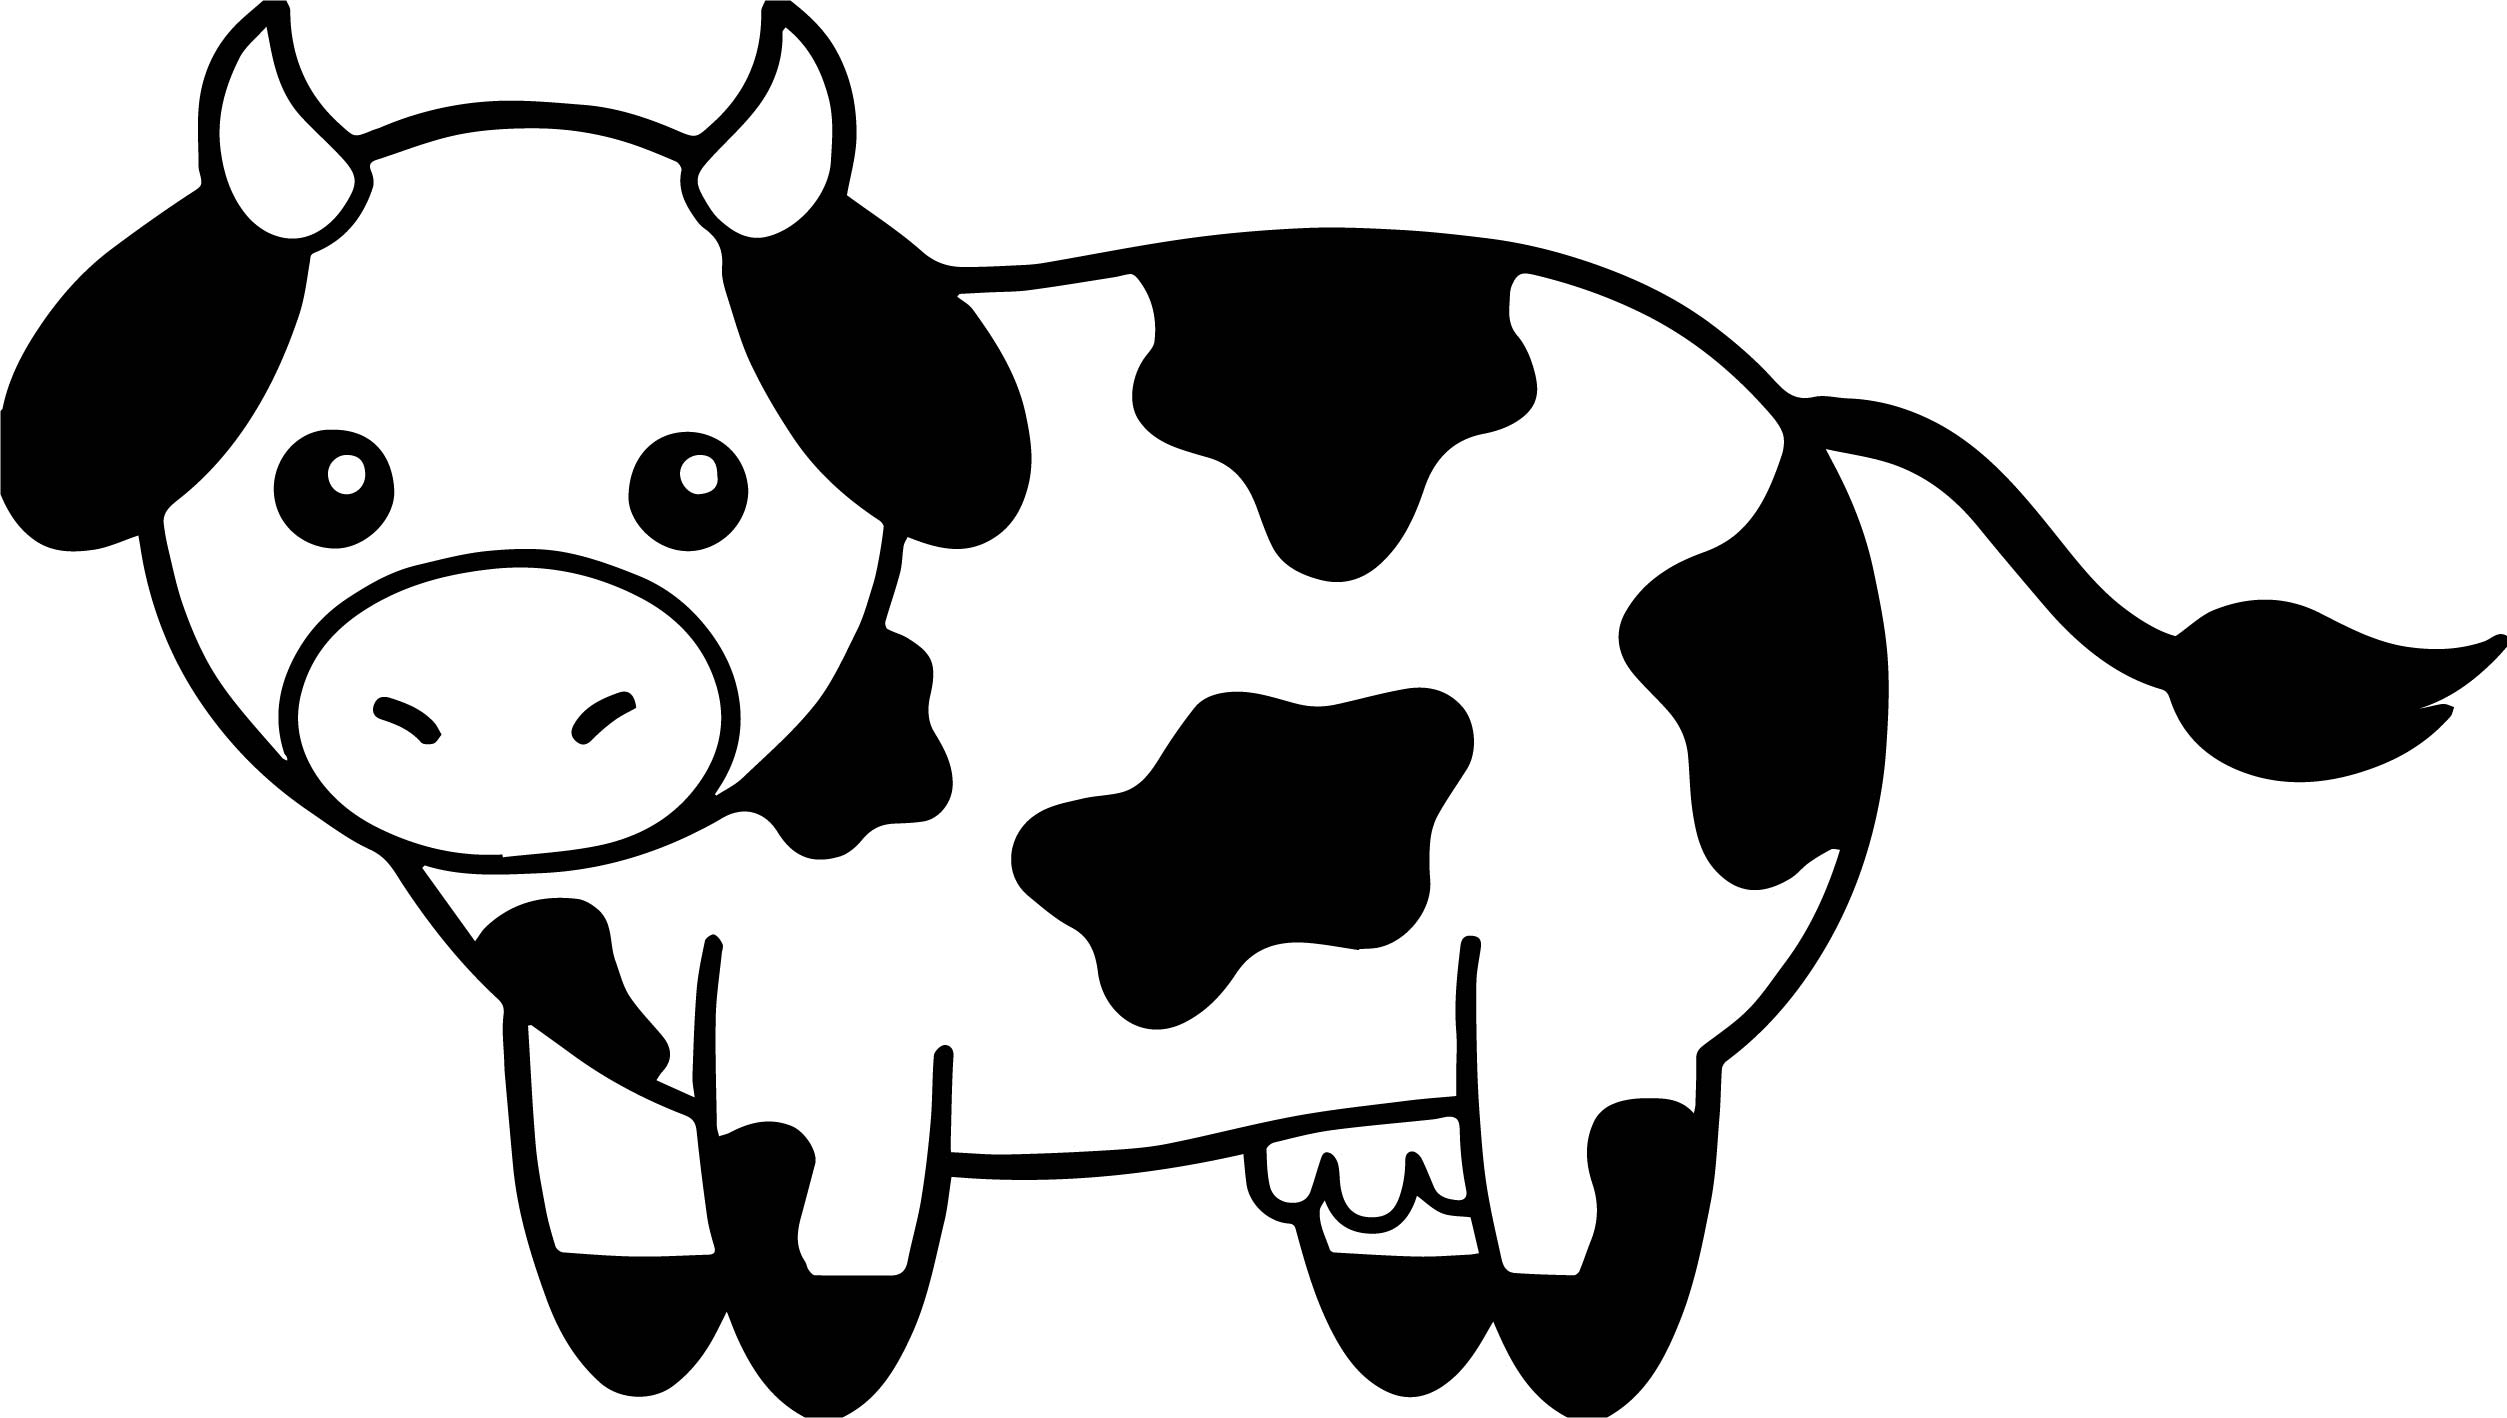 Cow Head Black And White Family Coloring Page